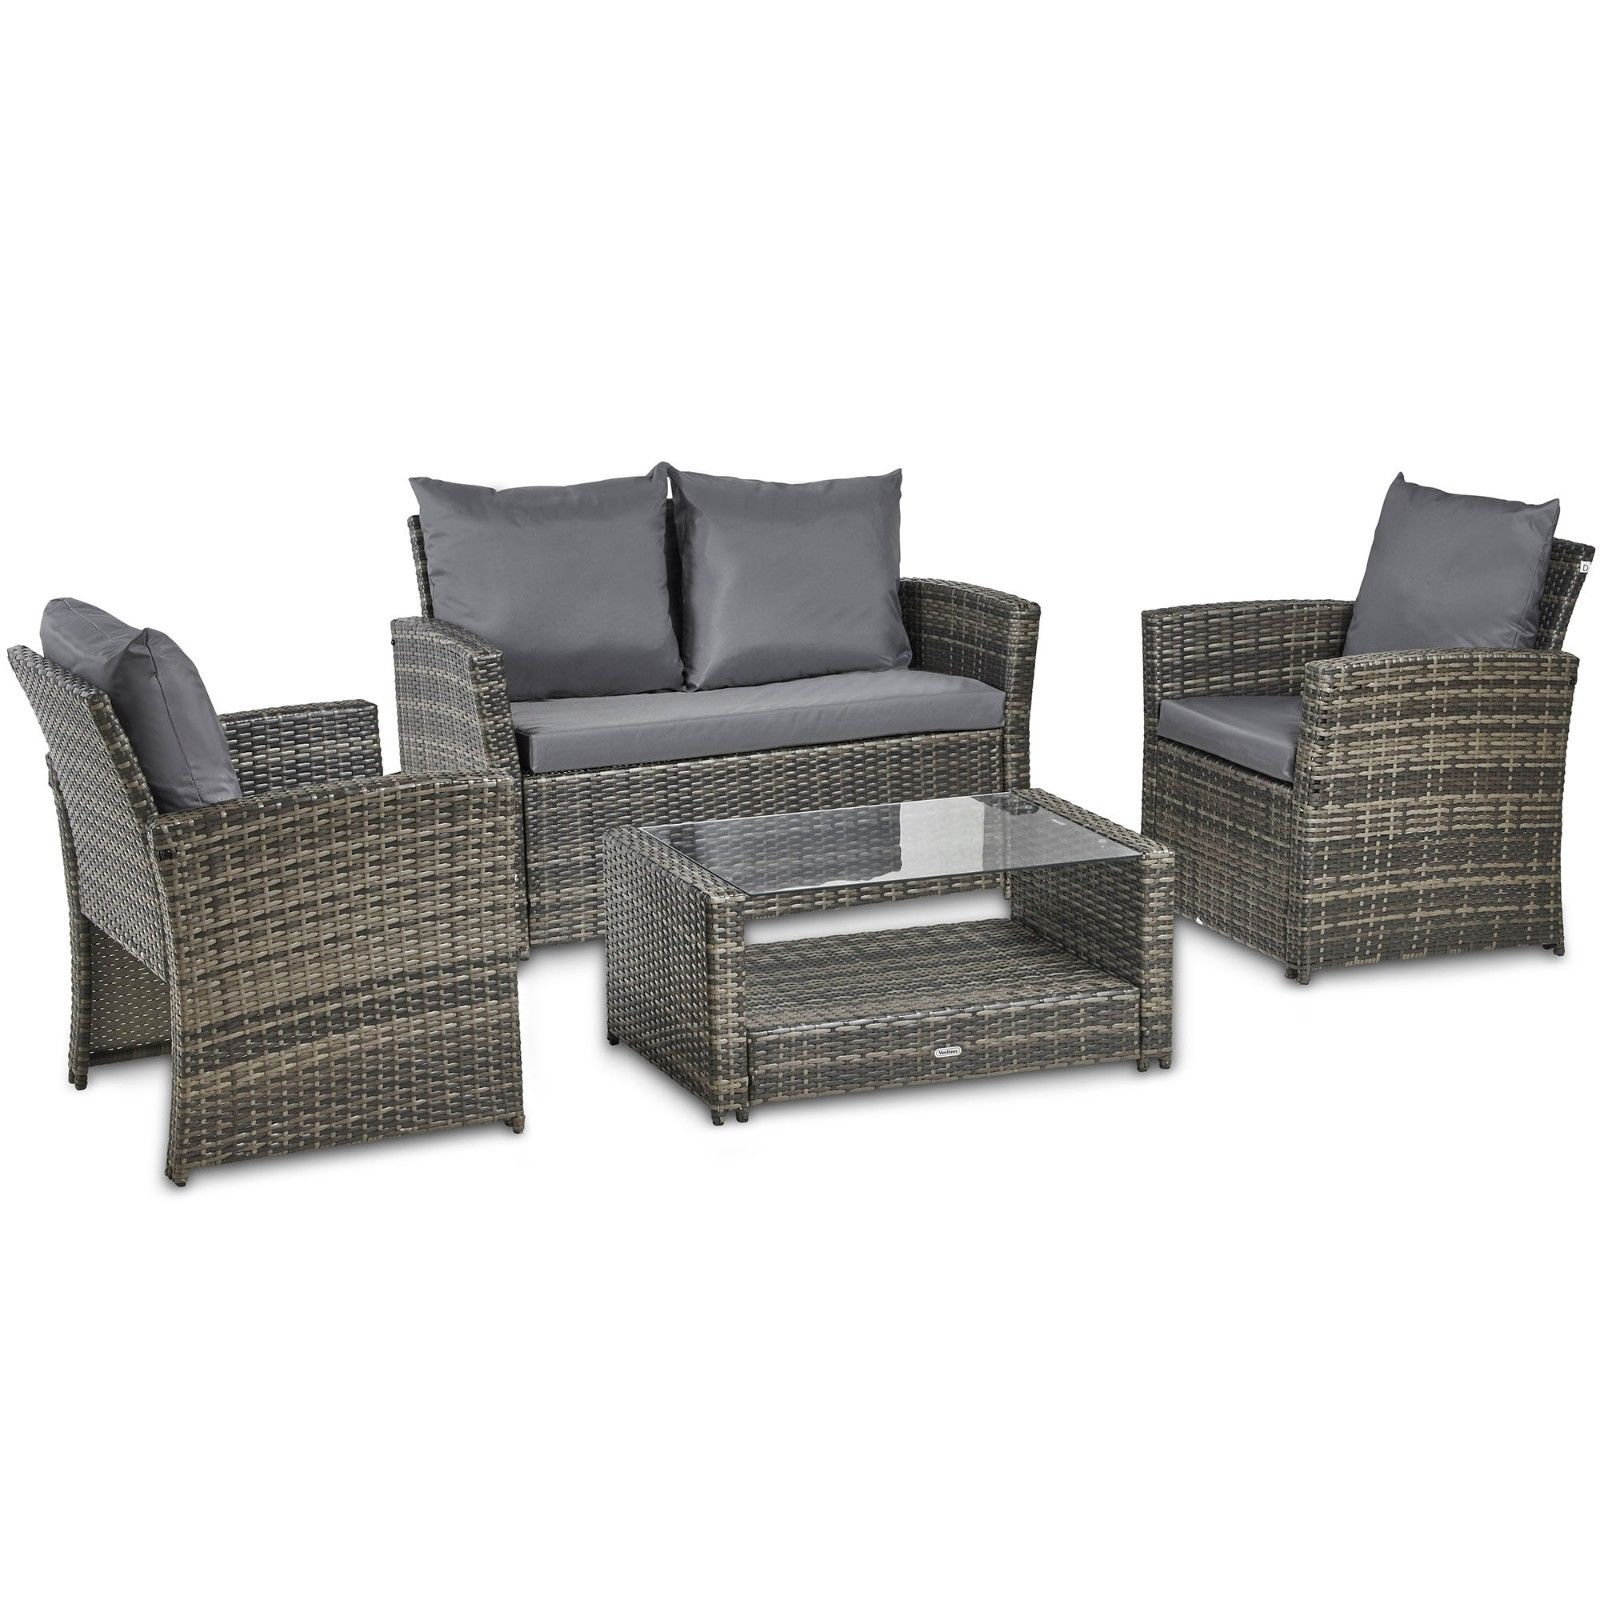 VonHaus 4 Piece Rattan Sofa Set Cushioned Grey Outside Furnishings Lounge & Consuming